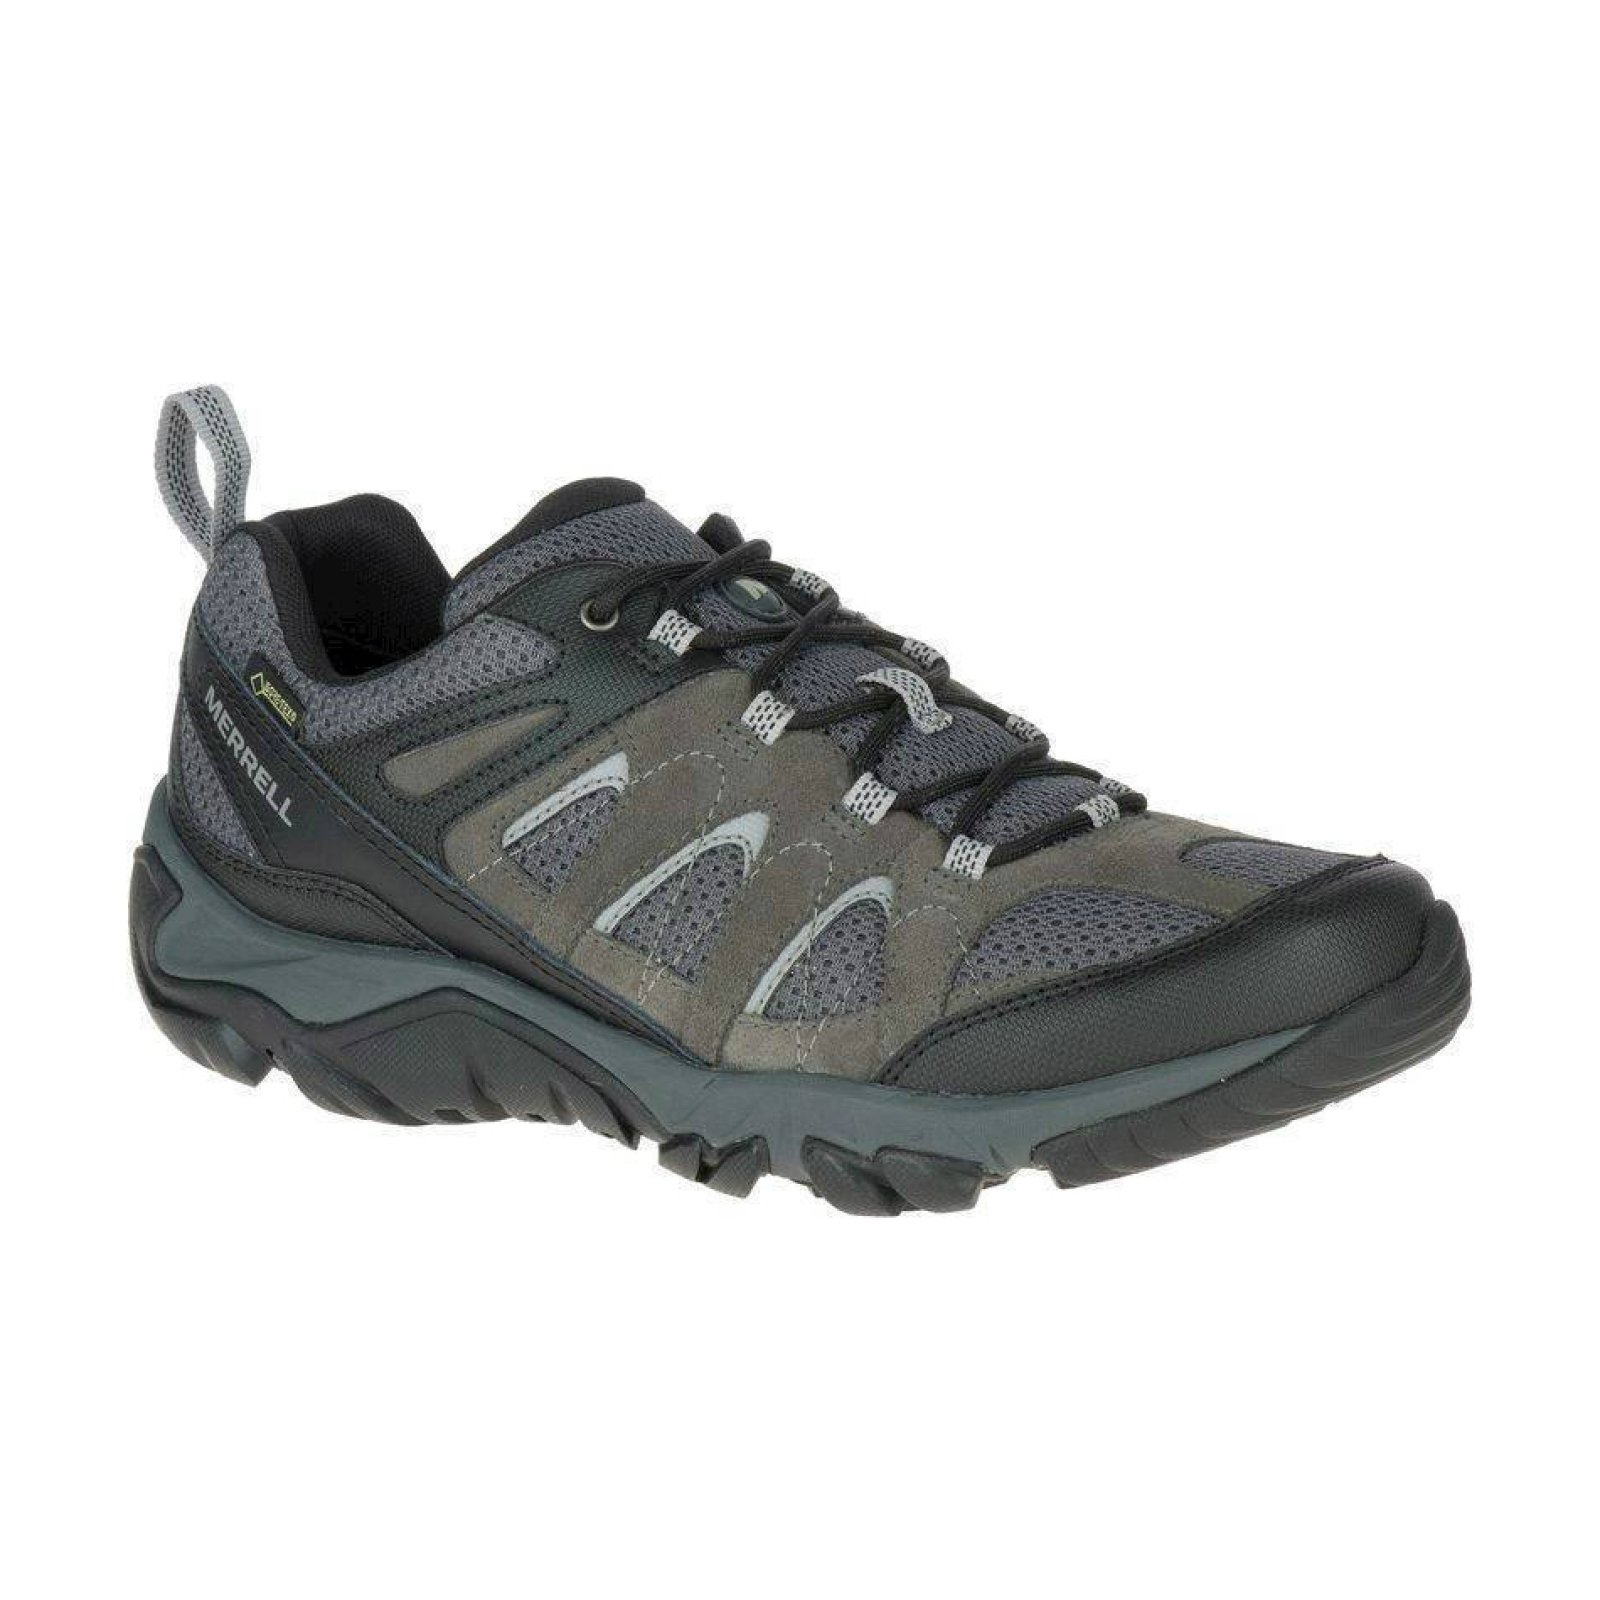 Outdoorové boty Merrell Outmost Vent GTX M J42455 - Actisport.cz 65b3c5460f